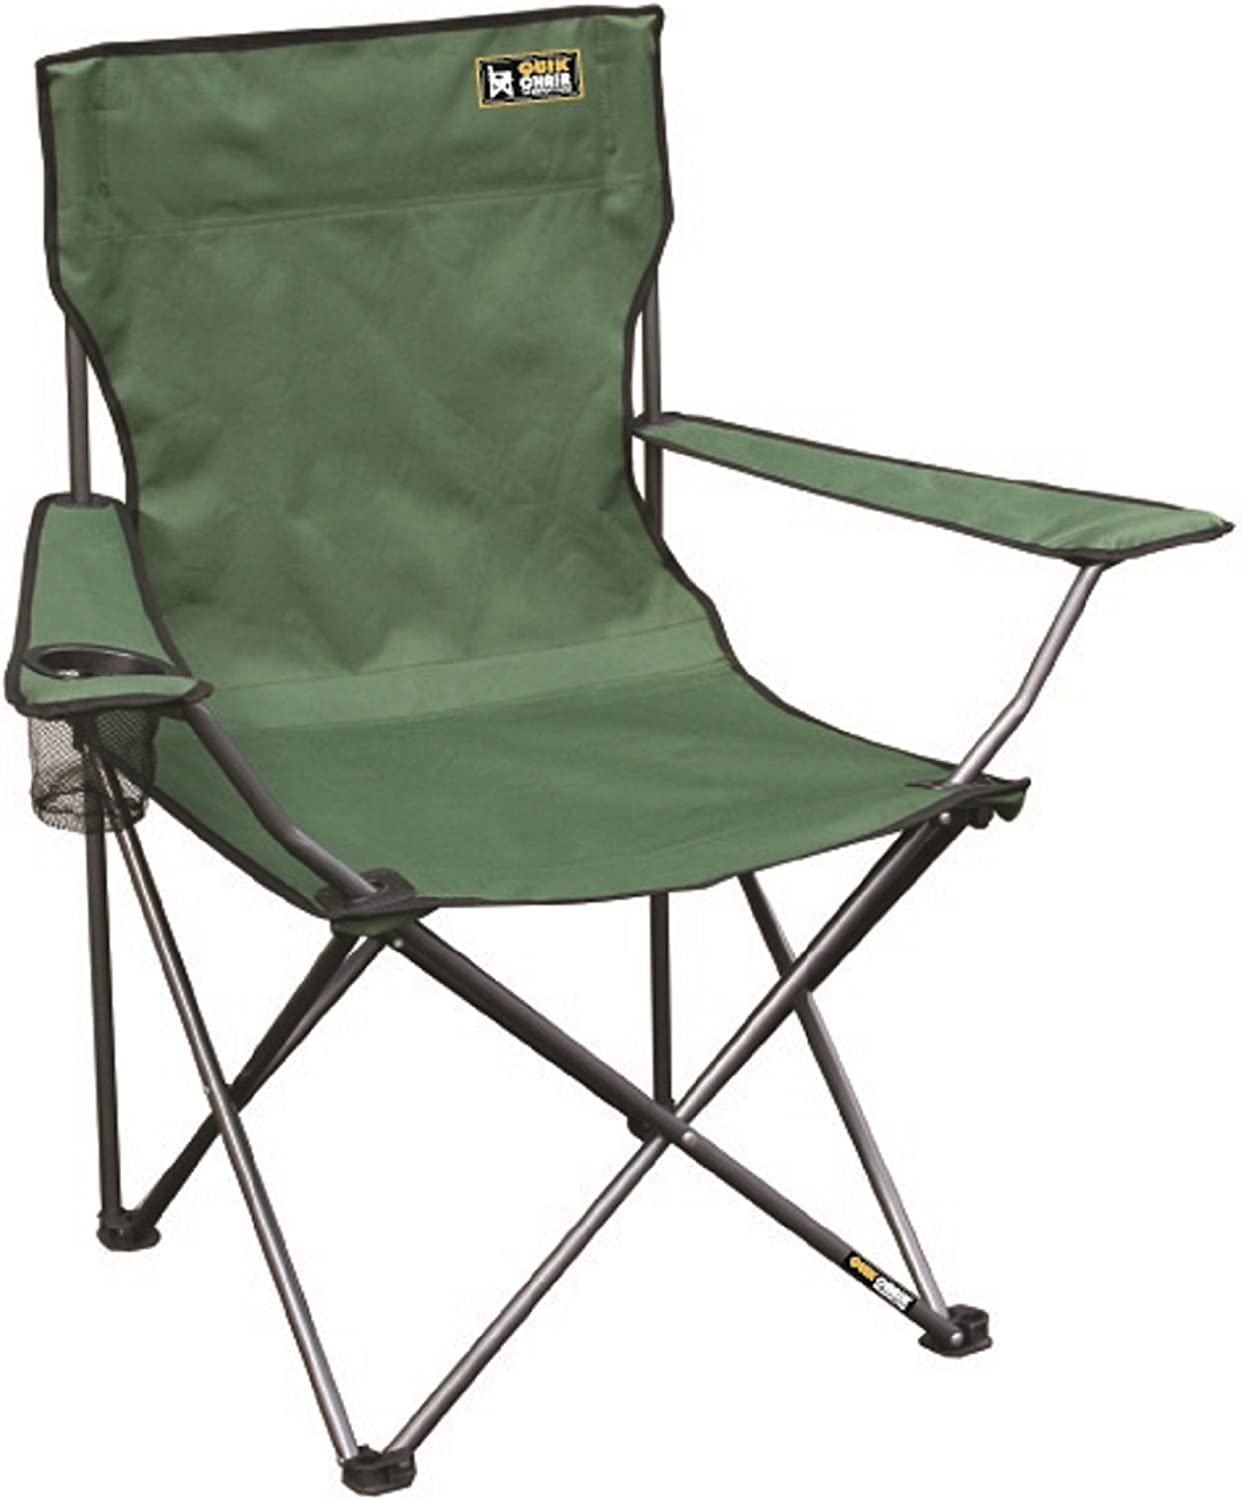 Camping Chair 12